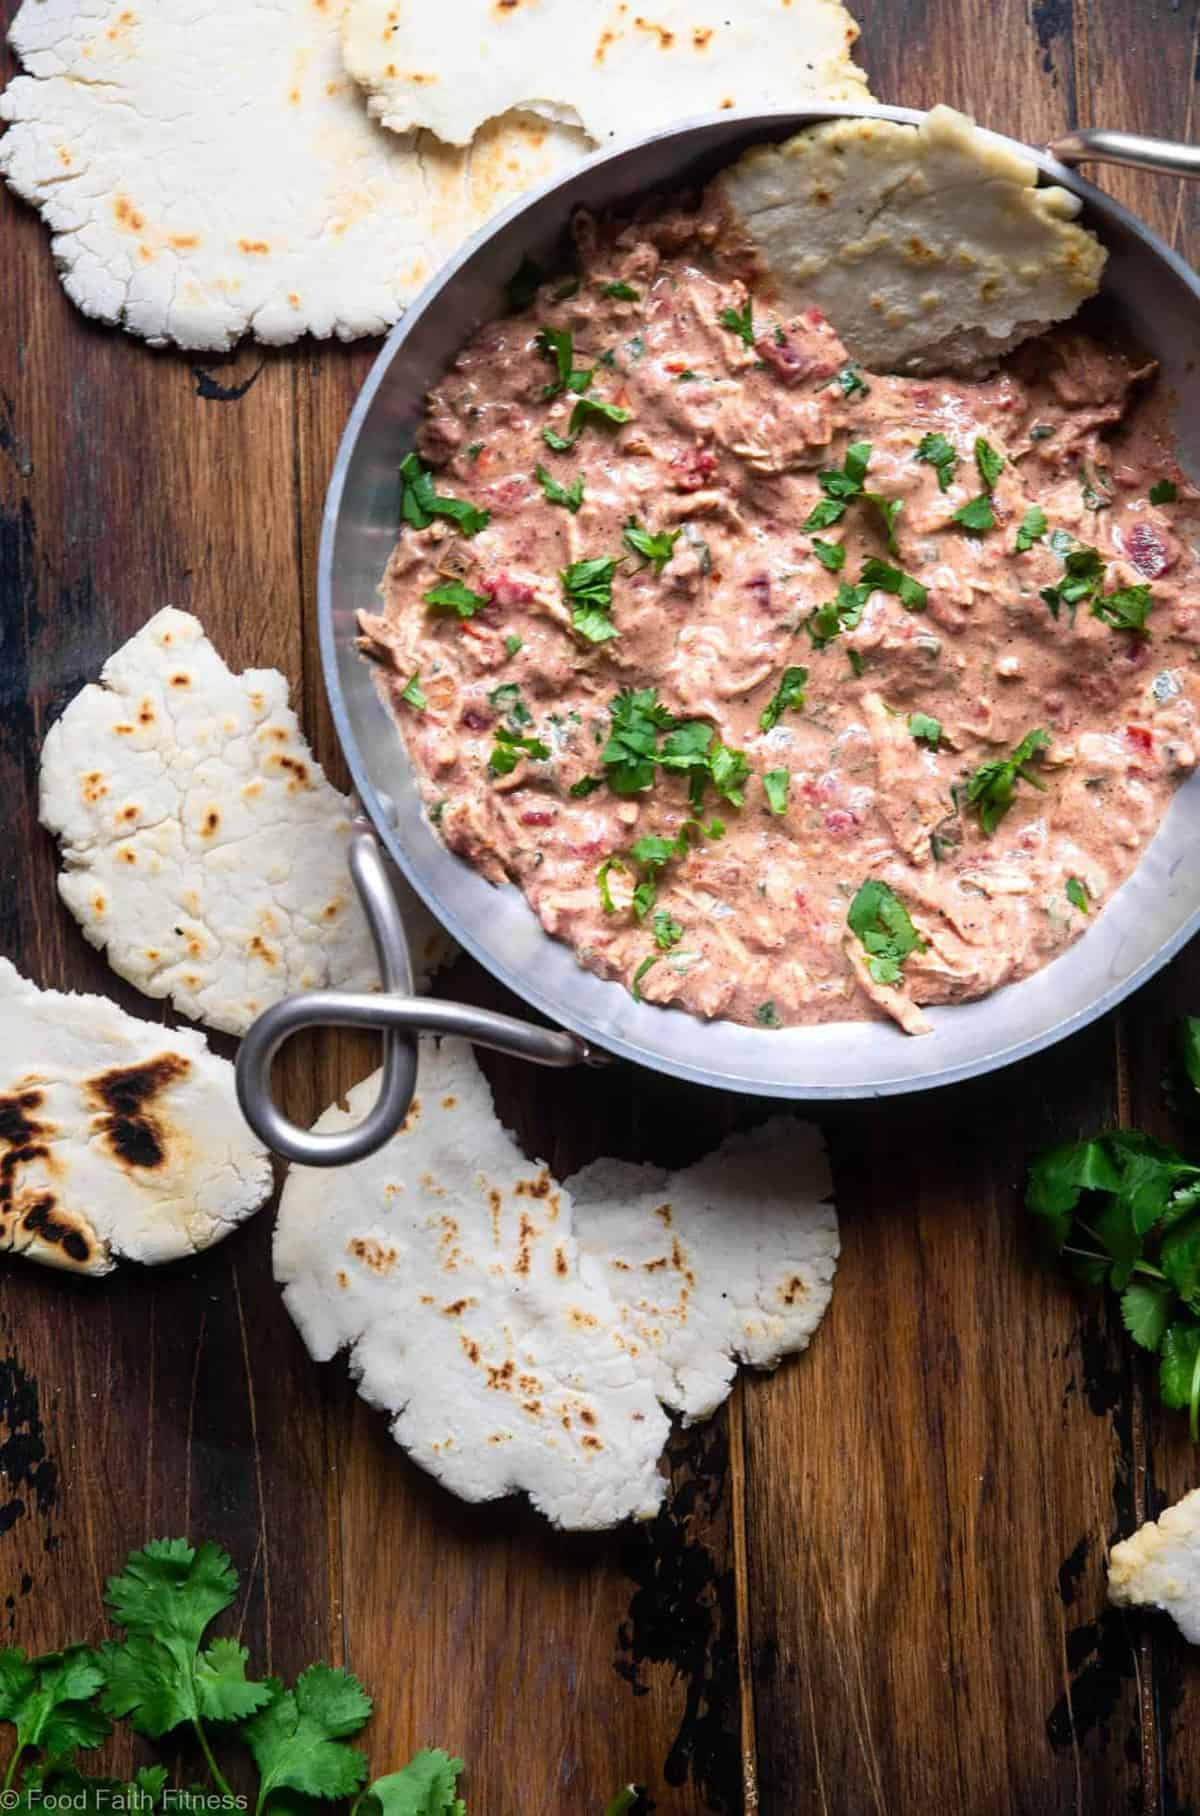 Butter Chicken Dip with Gluten Free Naan Bread - an easy, healthy, gluten free and protein packed twist on the classic served with an easy no yeast gluten free naan bread! Great for snacks or party appetizers! | #Foodfaithfitness | #Glutenfree #Eggfree #Butterchicken #Indian #Healthy